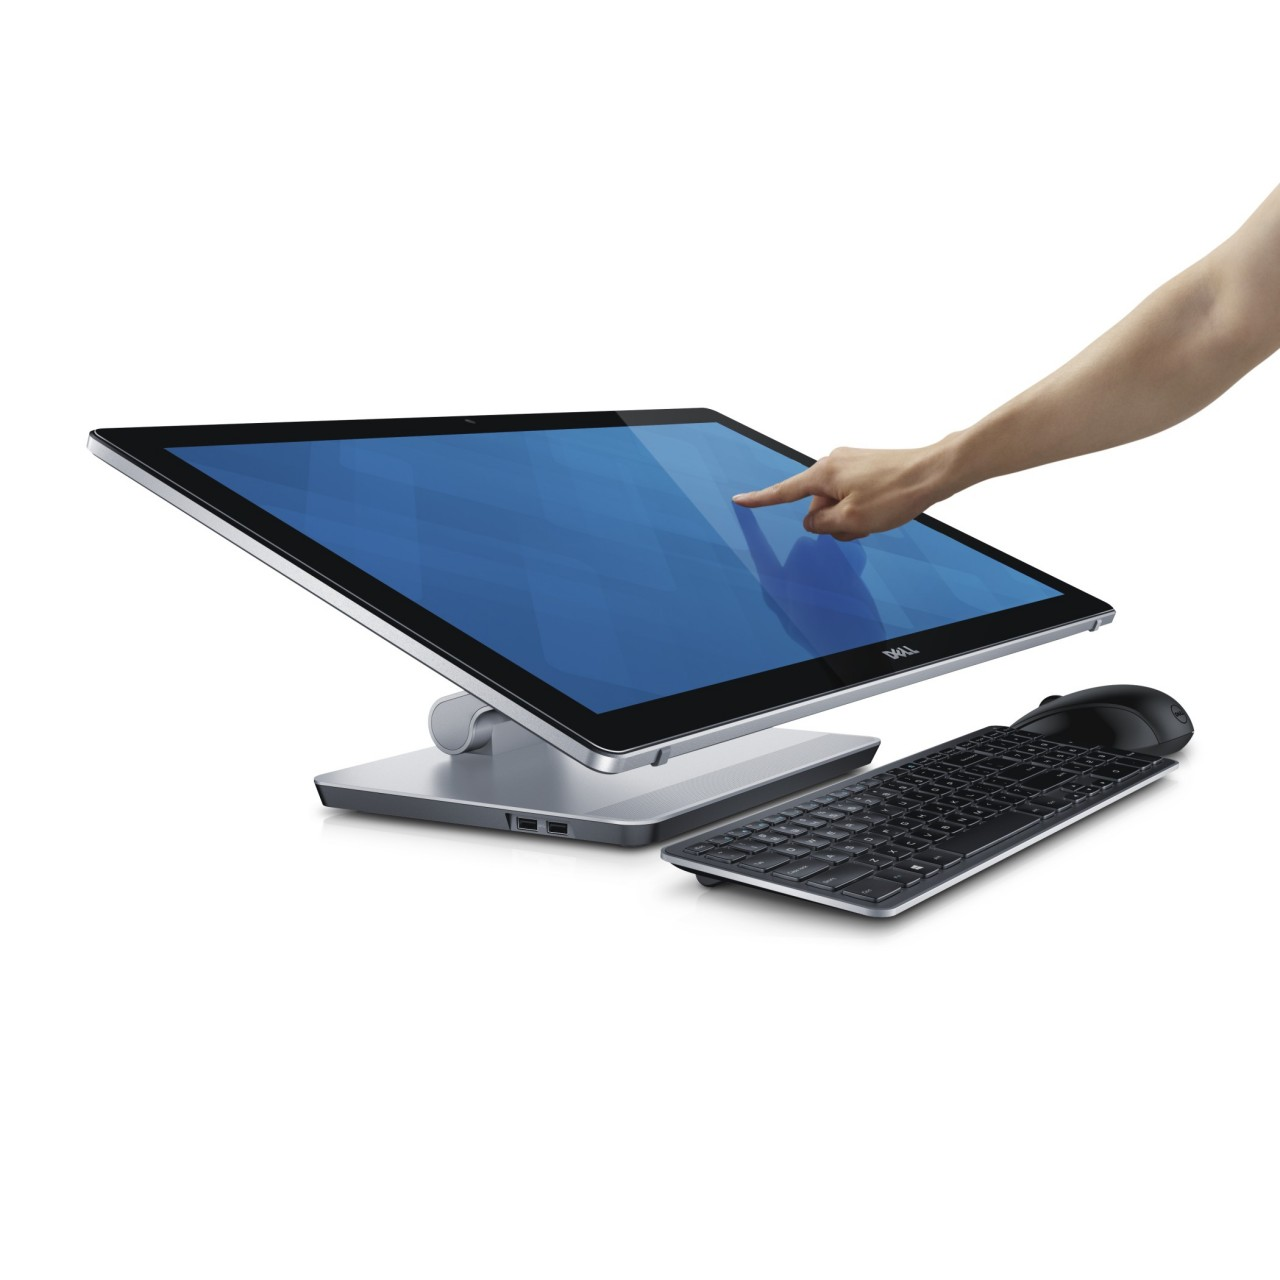 Dell Inspiron One 2350 (5397063656653)